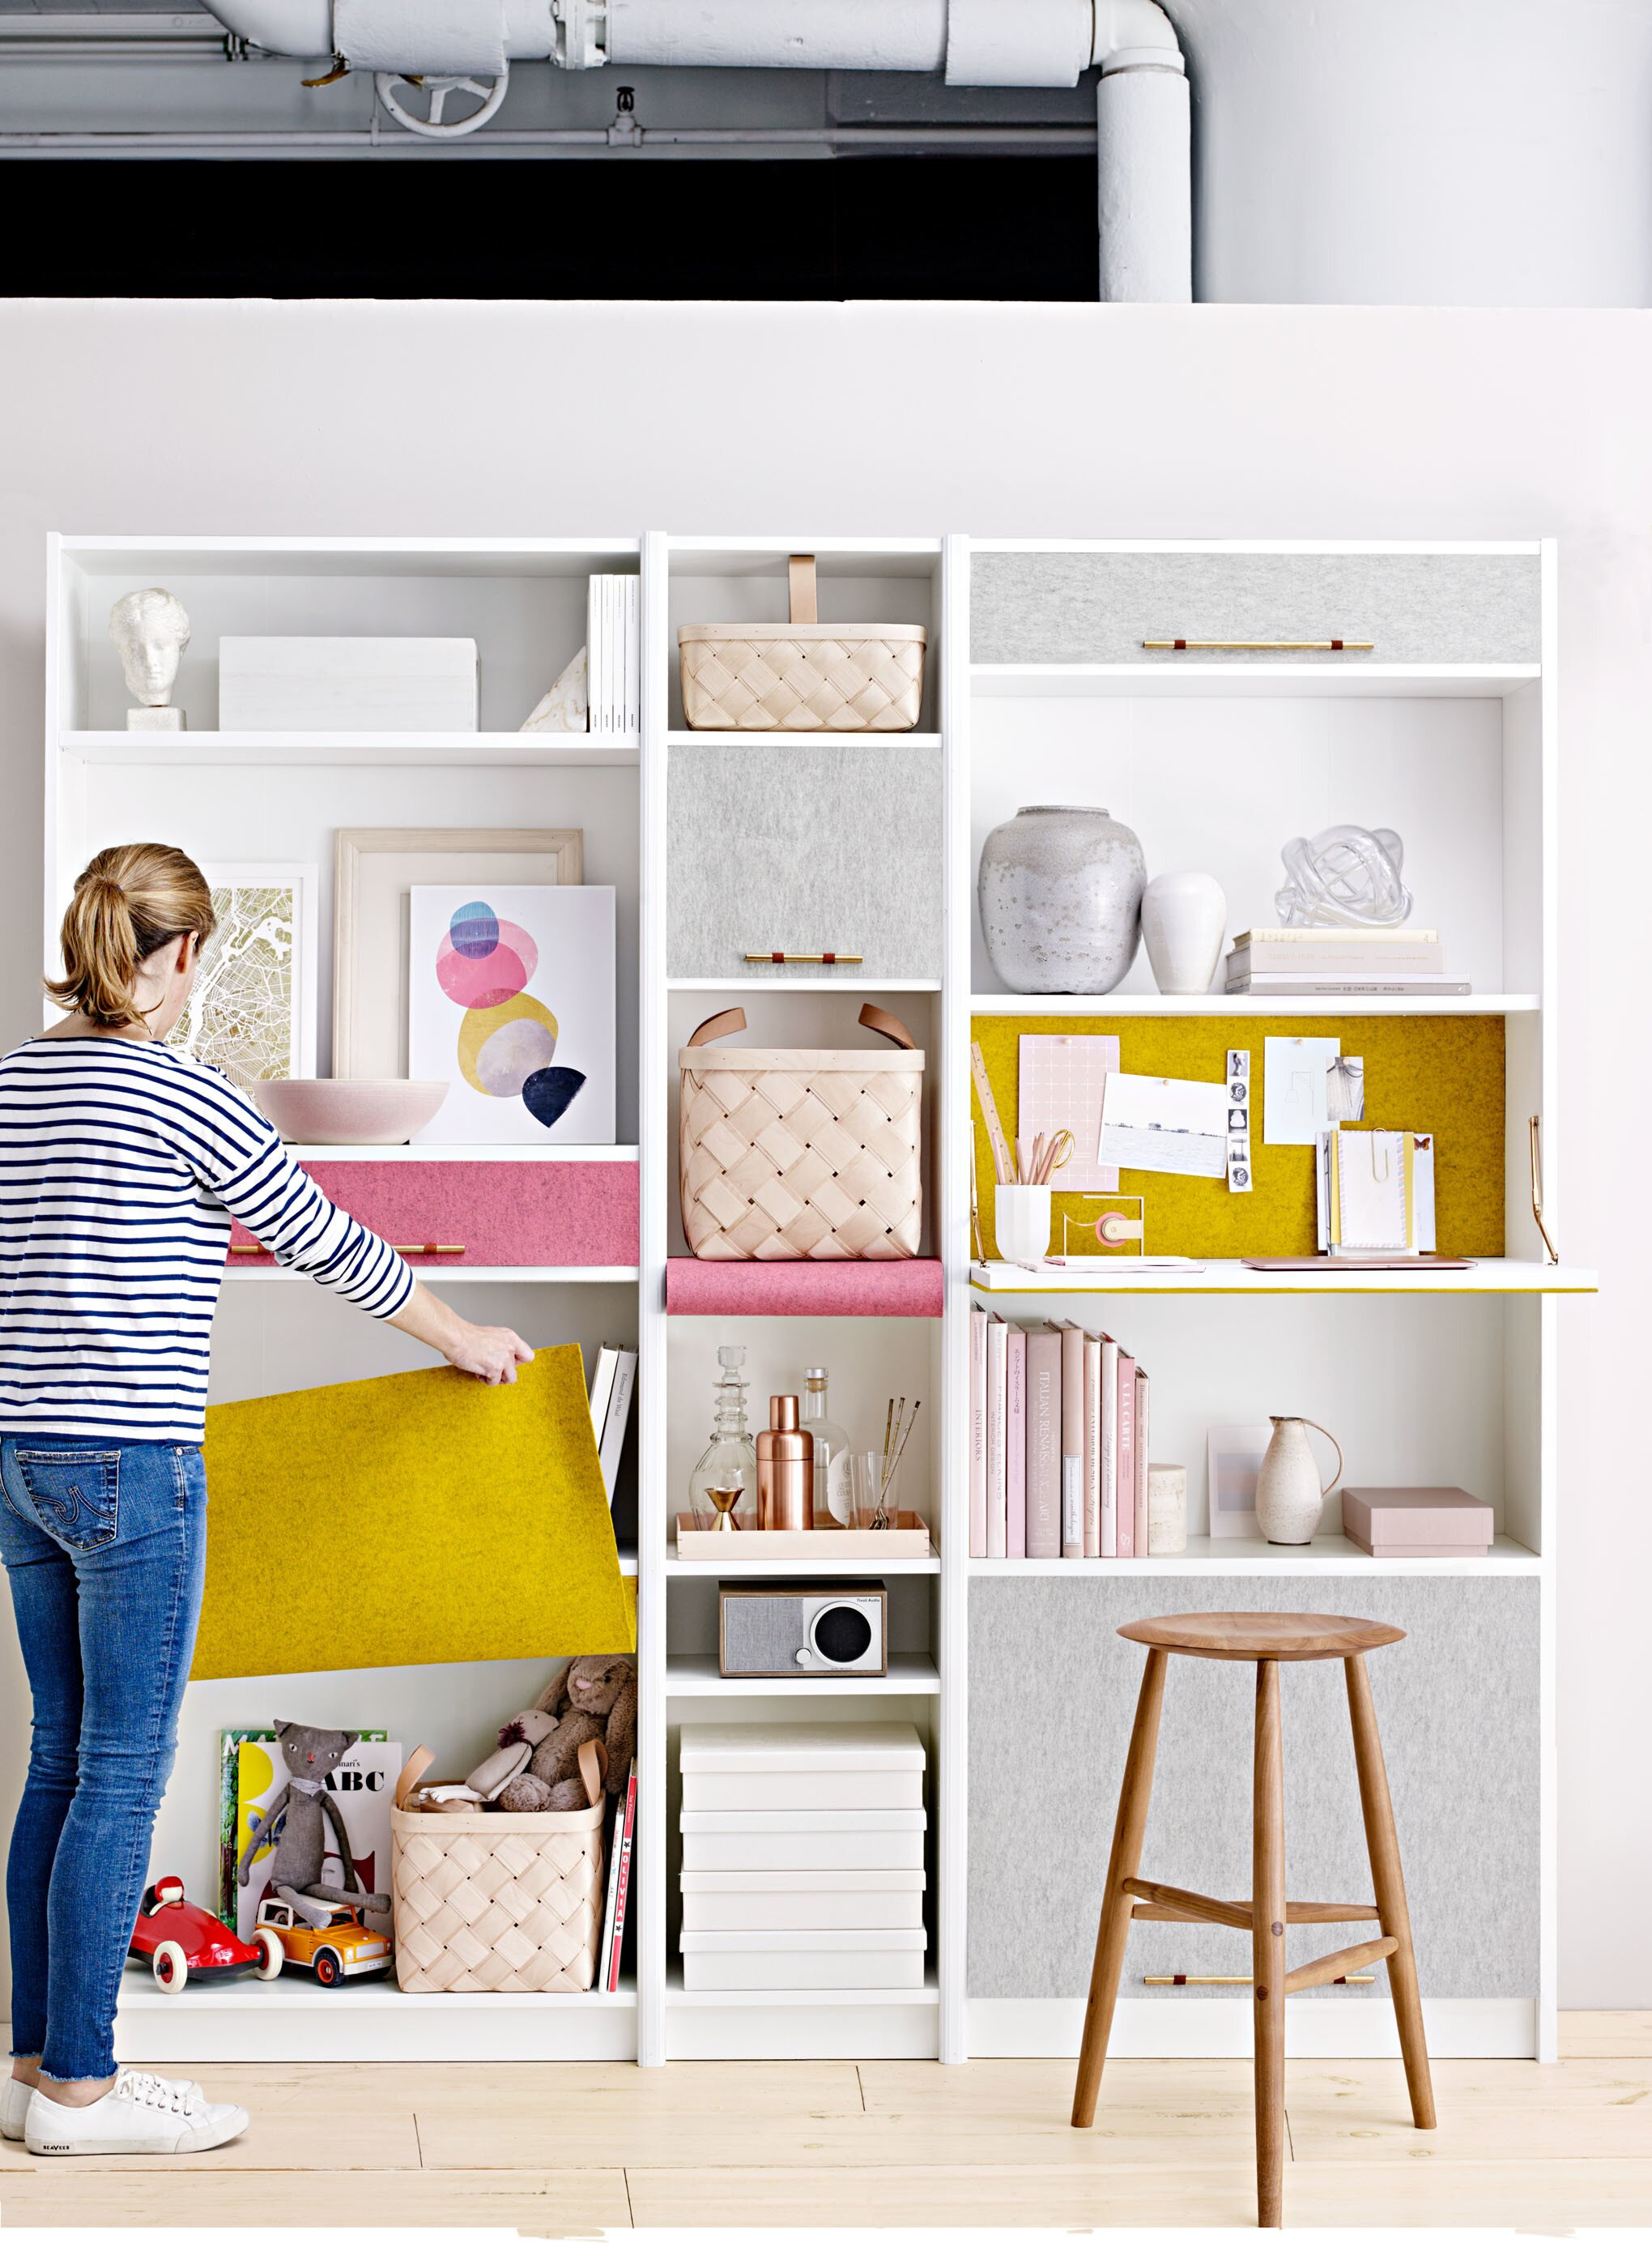 10 Diy Desks That You Can Build For Your Home Office